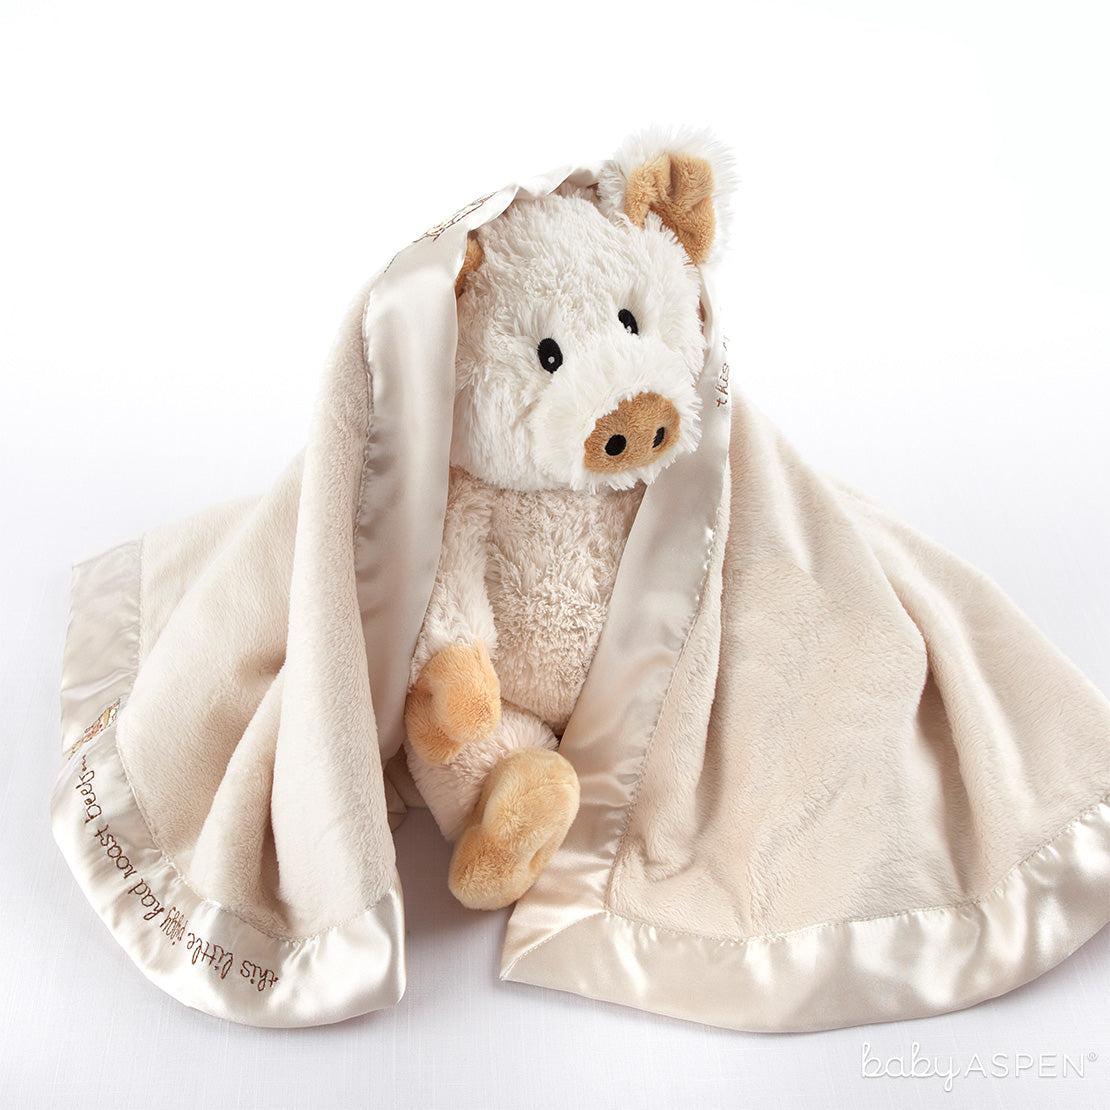 Pigs in a Blanket Two Piece Gift Set | Cozy Blankets & Lovies to Warm Baby this Winter | Baby Aspen